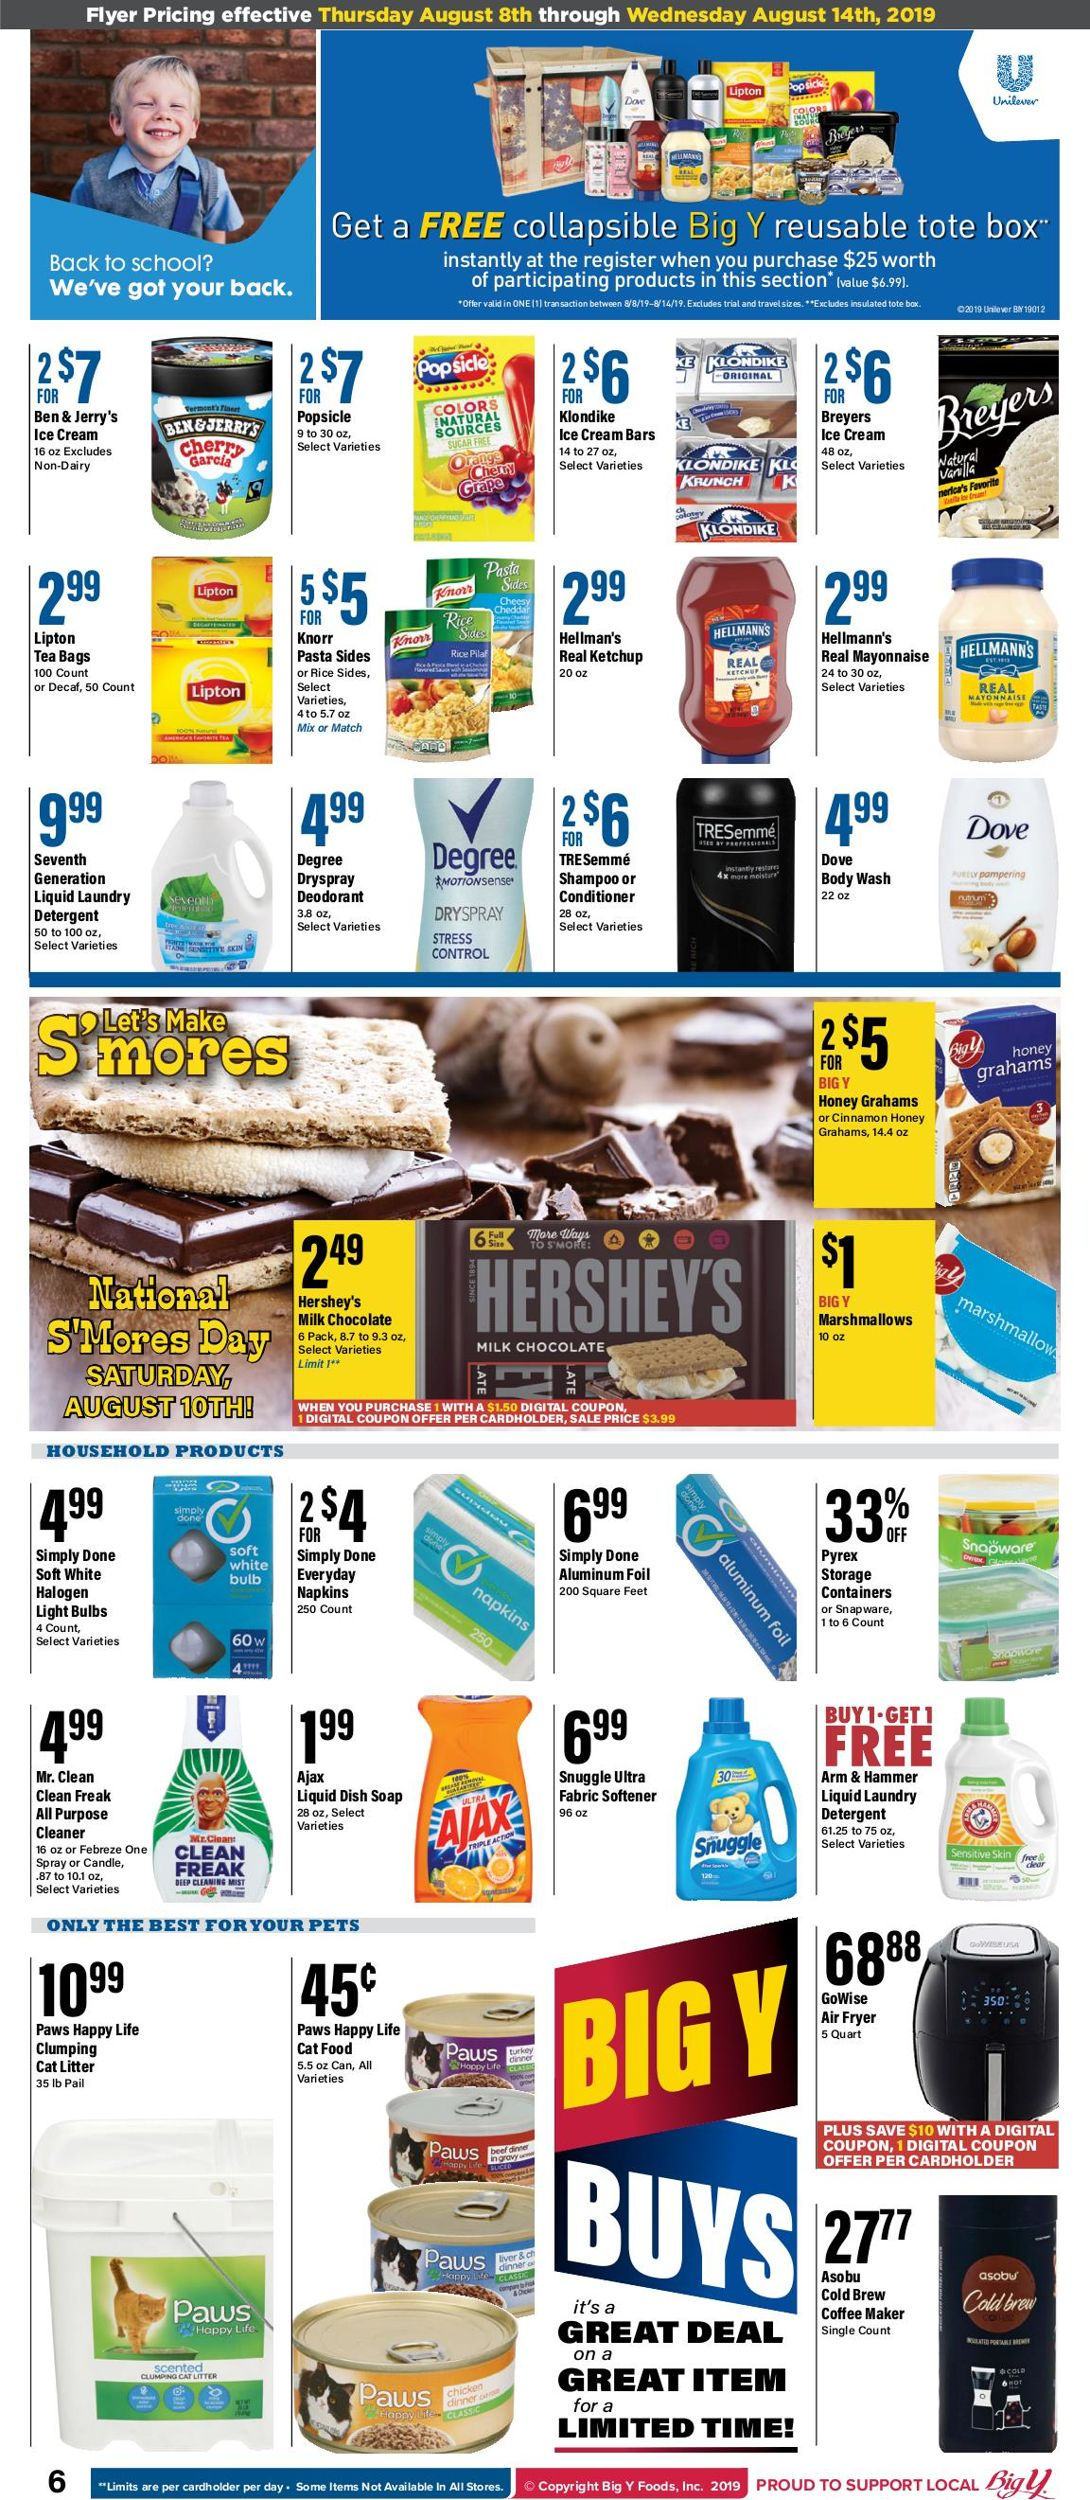 Big Y Current weekly ad 08/08 - 08/14/2019 [9] - frequent-ads.com